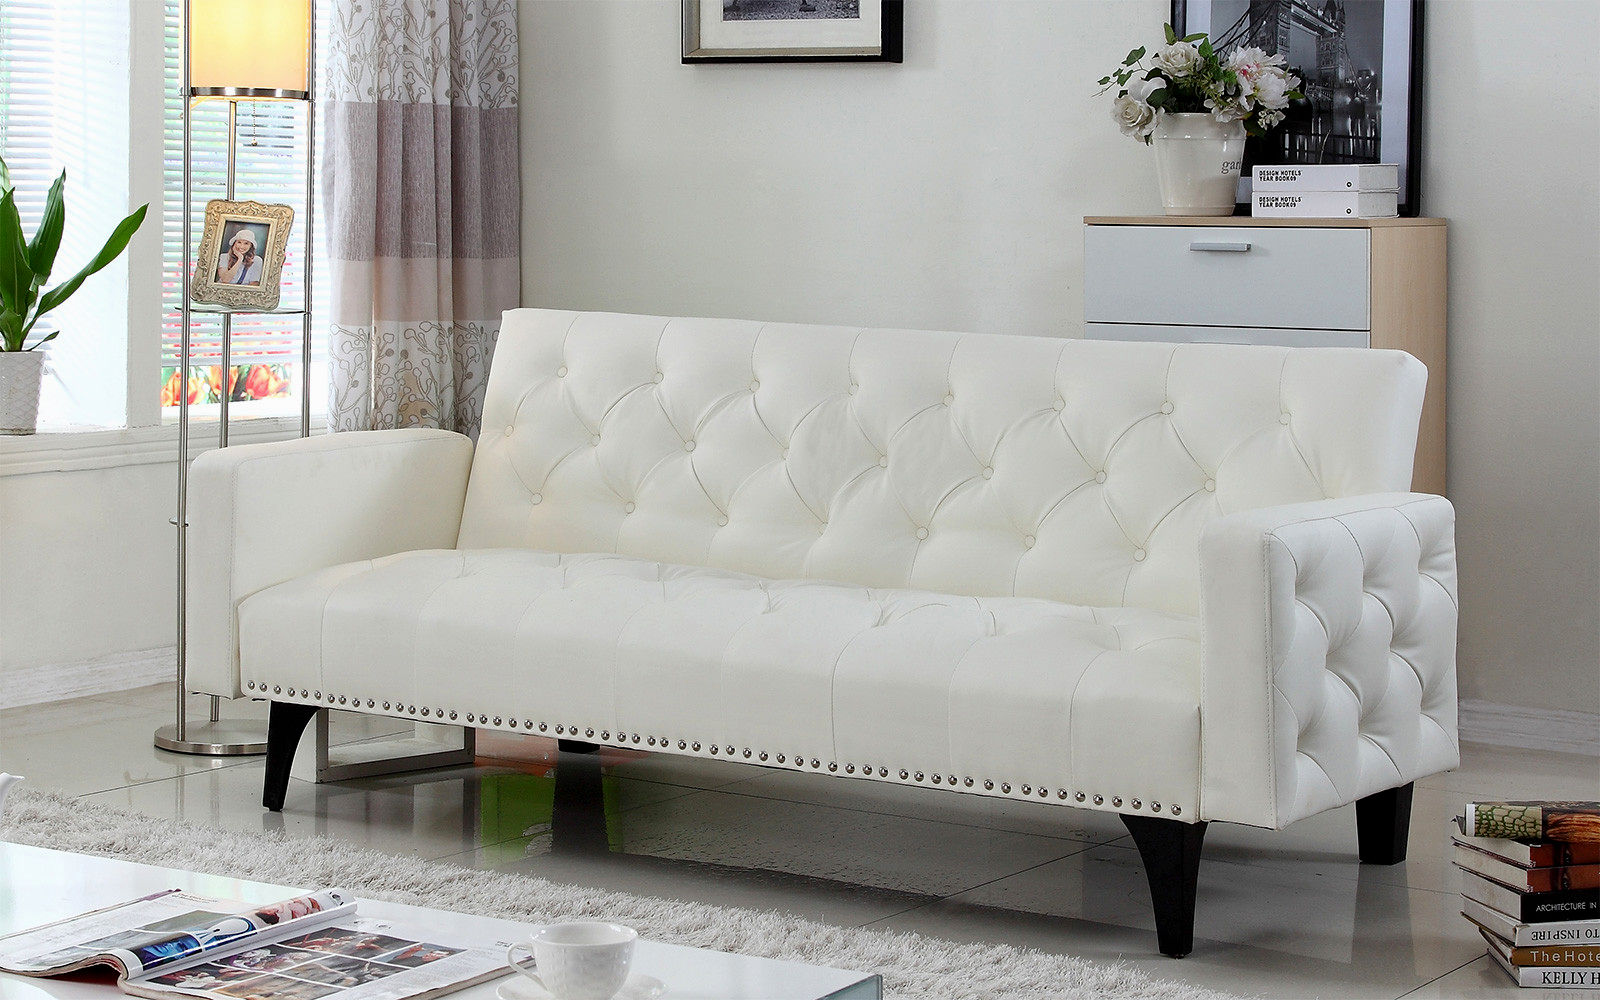 modern american leather sleeper sofa online-Fresh American Leather Sleeper sofa Pattern